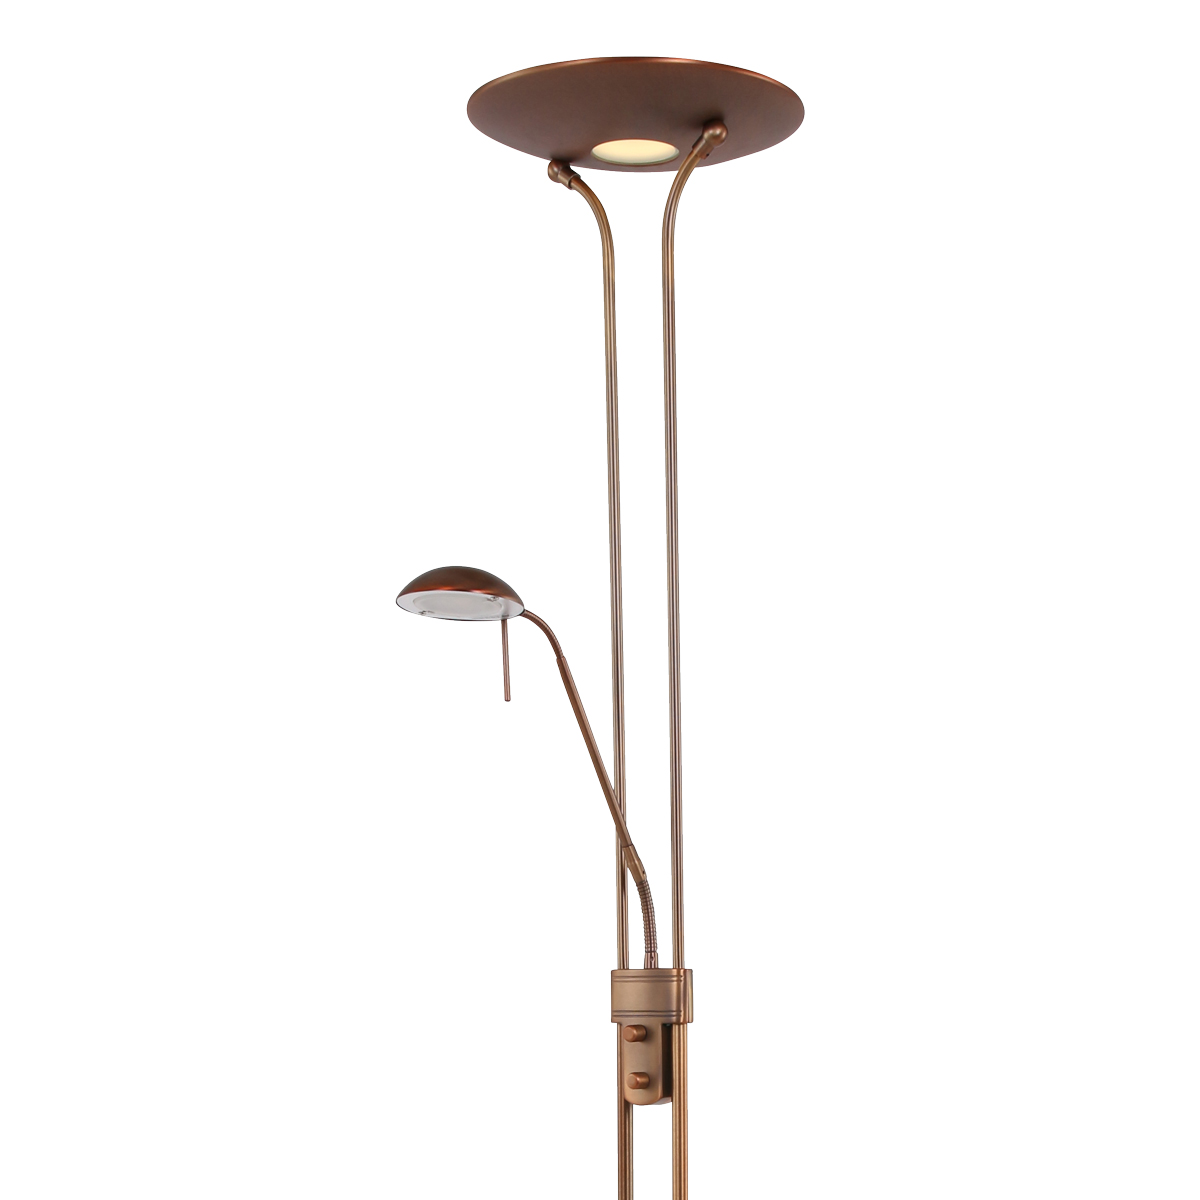 Stehlampe Dimmbar Led Lilo Klassische Stehlampe Led Bronze